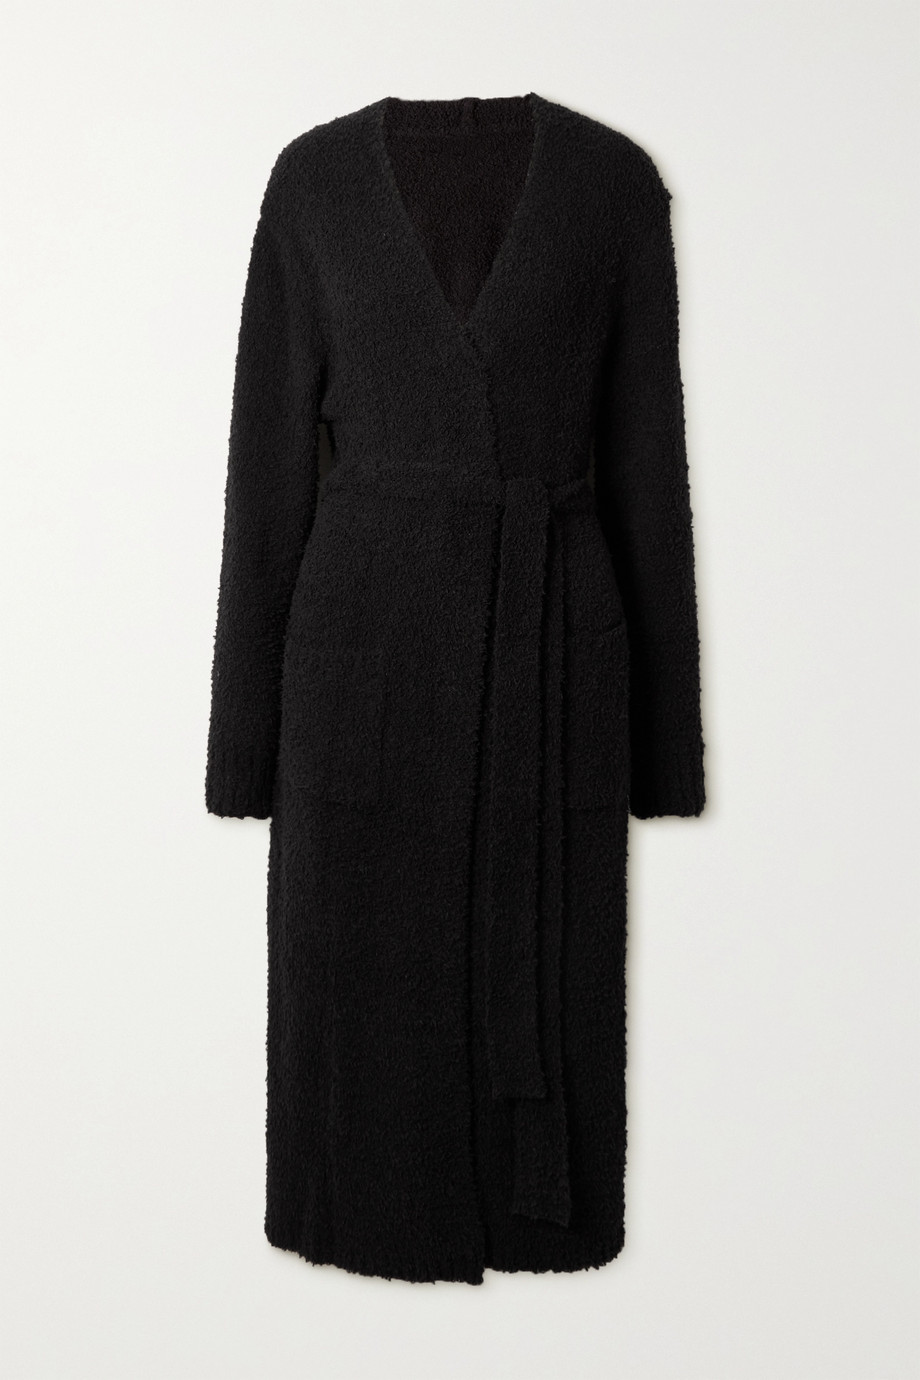 SKIMS Cozy Knit bouclé robe